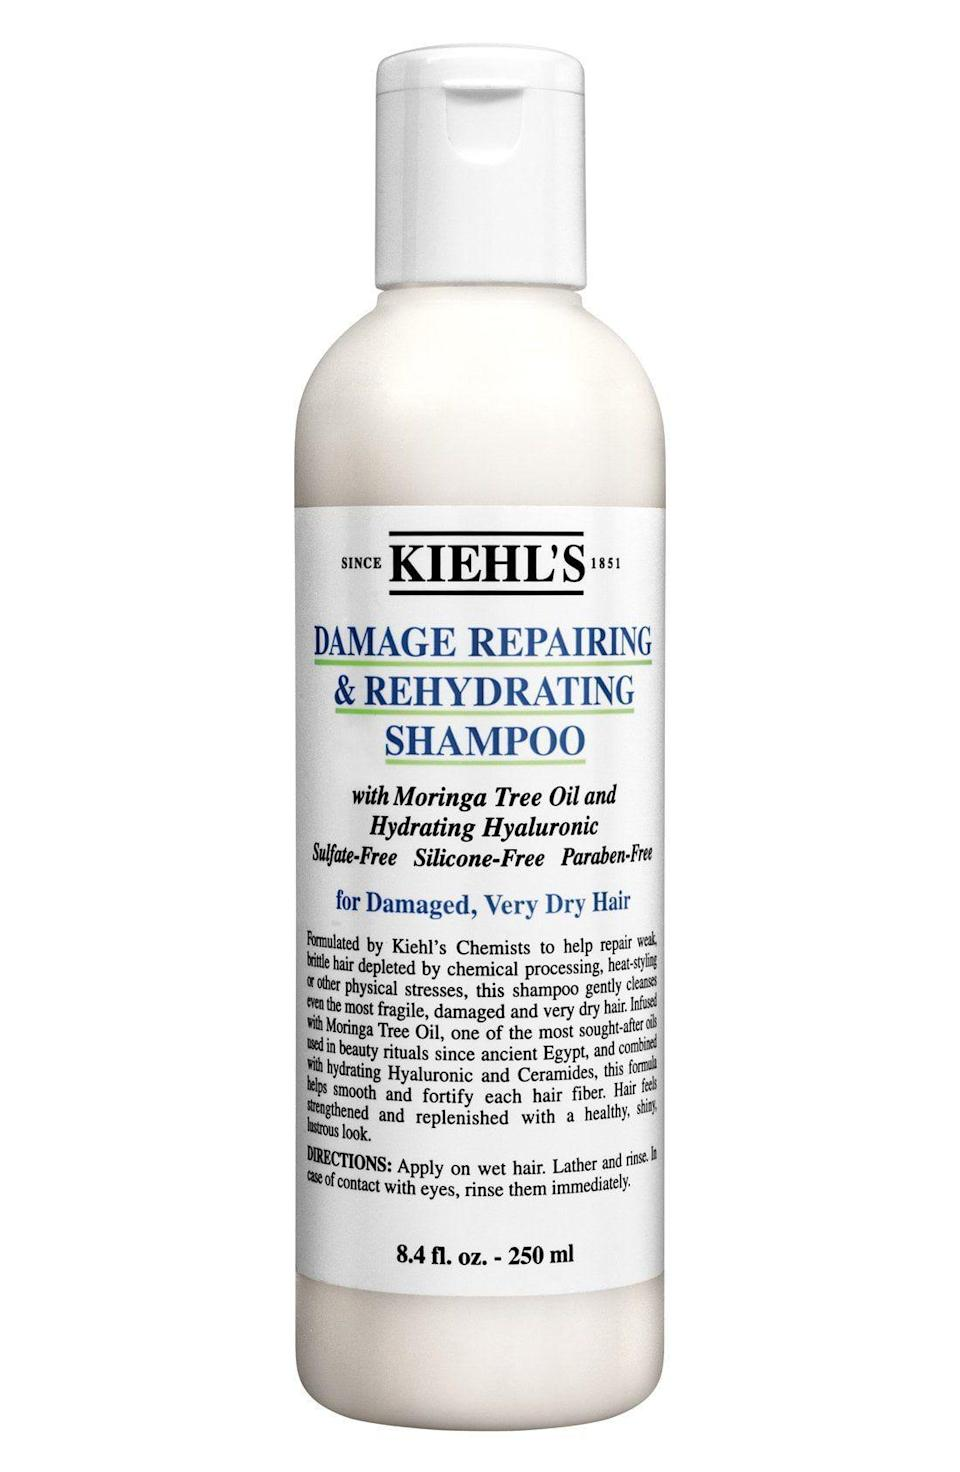 """<p><strong>Kiehl's</strong></p><p>kiehls.com</p><p><strong>$20.00</strong></p><p><a href=""""https://go.redirectingat.com?id=74968X1596630&url=https%3A%2F%2Fwww.kiehls.com%2Fhair%2Fshampoos%2Fdamage-repairing-and-rehydrating-shampoo%2F249.html&sref=https%3A%2F%2Fwww.harpersbazaar.com%2Fbeauty%2Fhair%2Fg24892831%2Fbest-sulfate-free-shampoos%2F"""" rel=""""nofollow noopener"""" target=""""_blank"""" data-ylk=""""slk:SHOP"""" class=""""link rapid-noclick-resp"""">SHOP</a></p><p>The moringa tree oil, hyaluronic acid, and ceramides found in this shampoo strengthens hair so that it can withstand treatments and styling that requires extreme heat. It's the perfect defense against hot tools that do a number on our hair.</p>"""